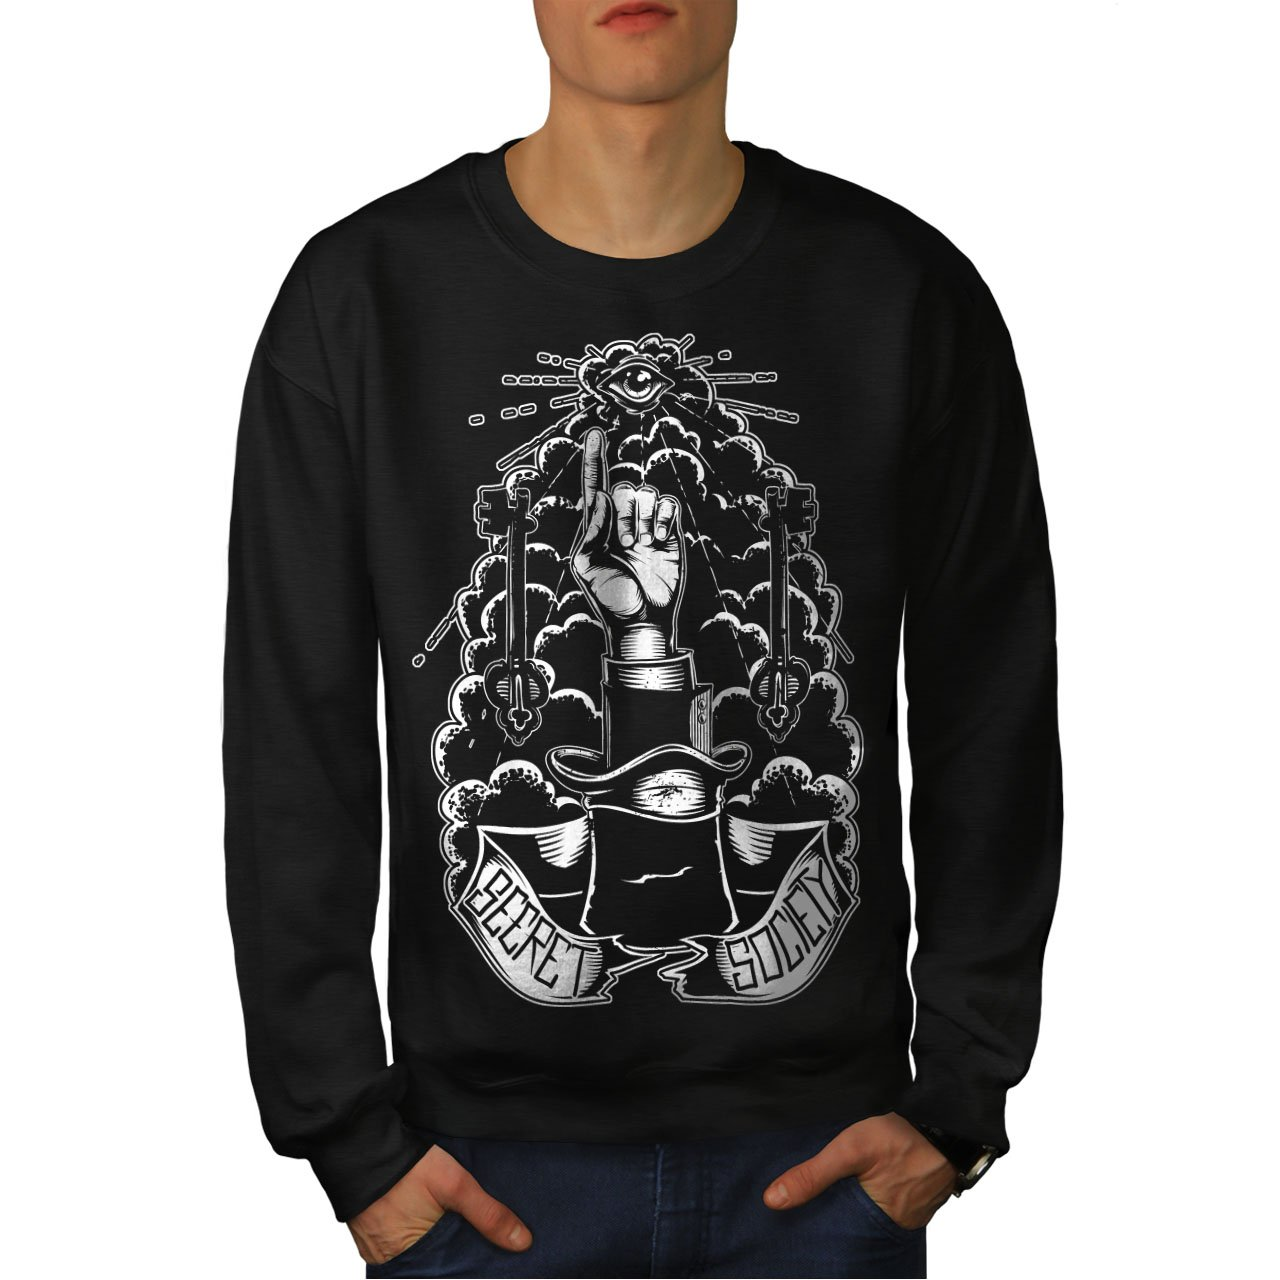 Wellcoda Secret Illuminati Mens Sweatshirt, Illuminati Top Pullover Jumper